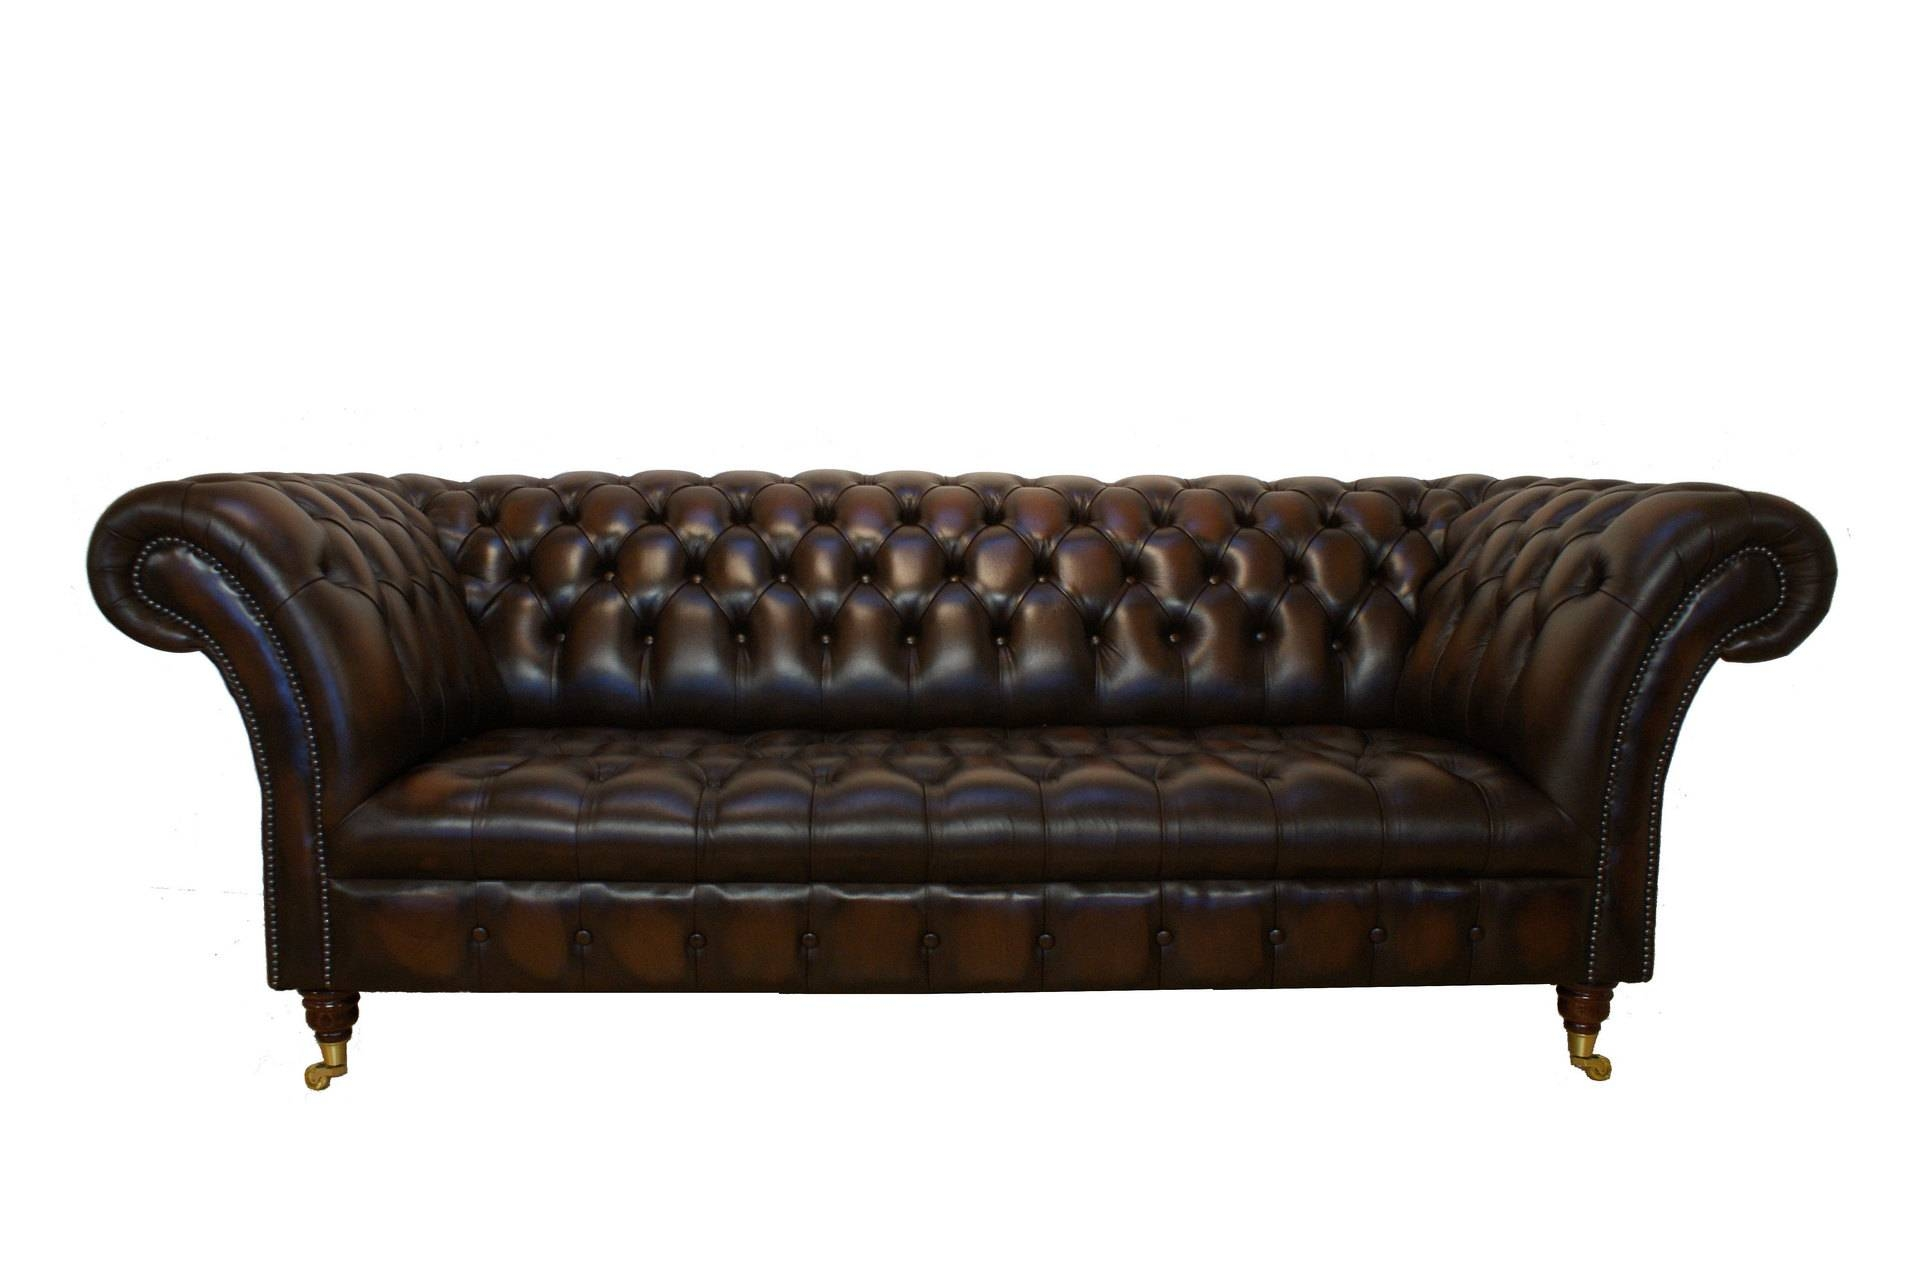 How To Buy A Cheap Chesterfield Sofa | Designersofas4U Blog for Chesterfield Sofas And Chairs (Image 11 of 15)